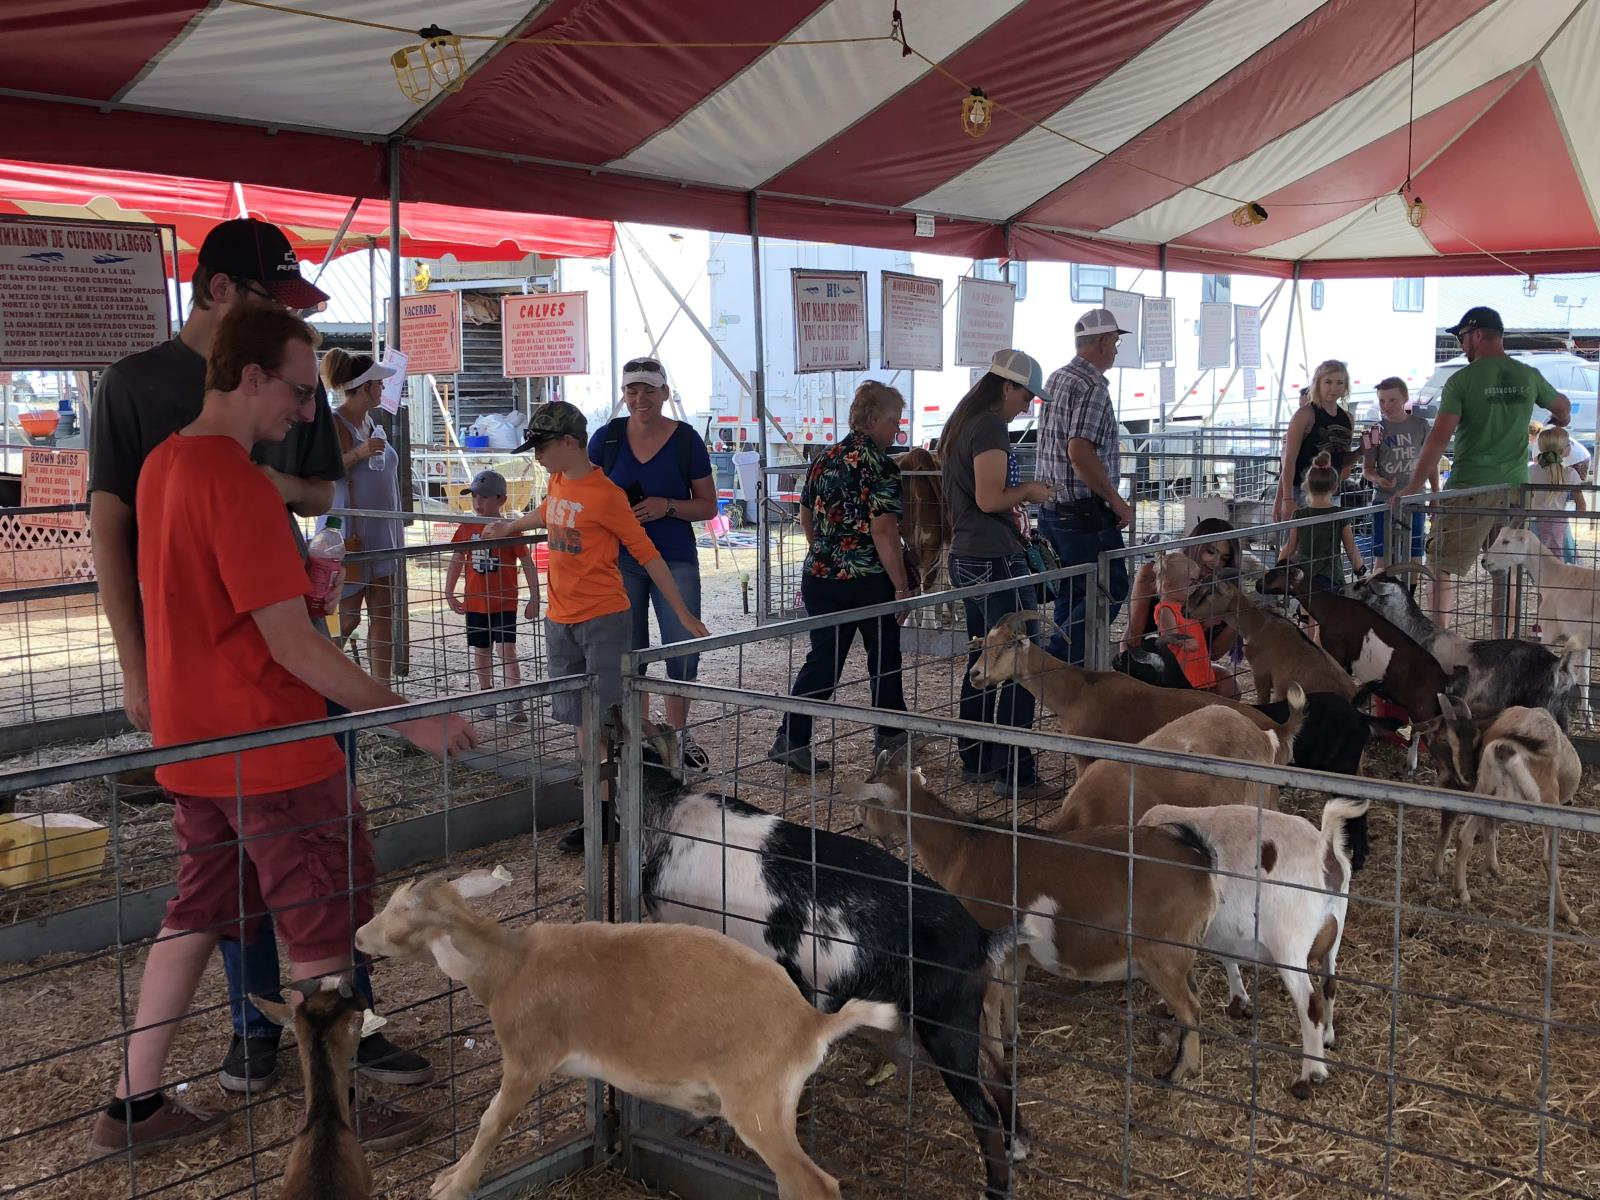 People visit a petting zoo during the recent Eastern Idaho State Fair in Blackfoot. Idaho Farm Bureau Federation helped sponsor the display, which used animals to help educate people about agriculture.